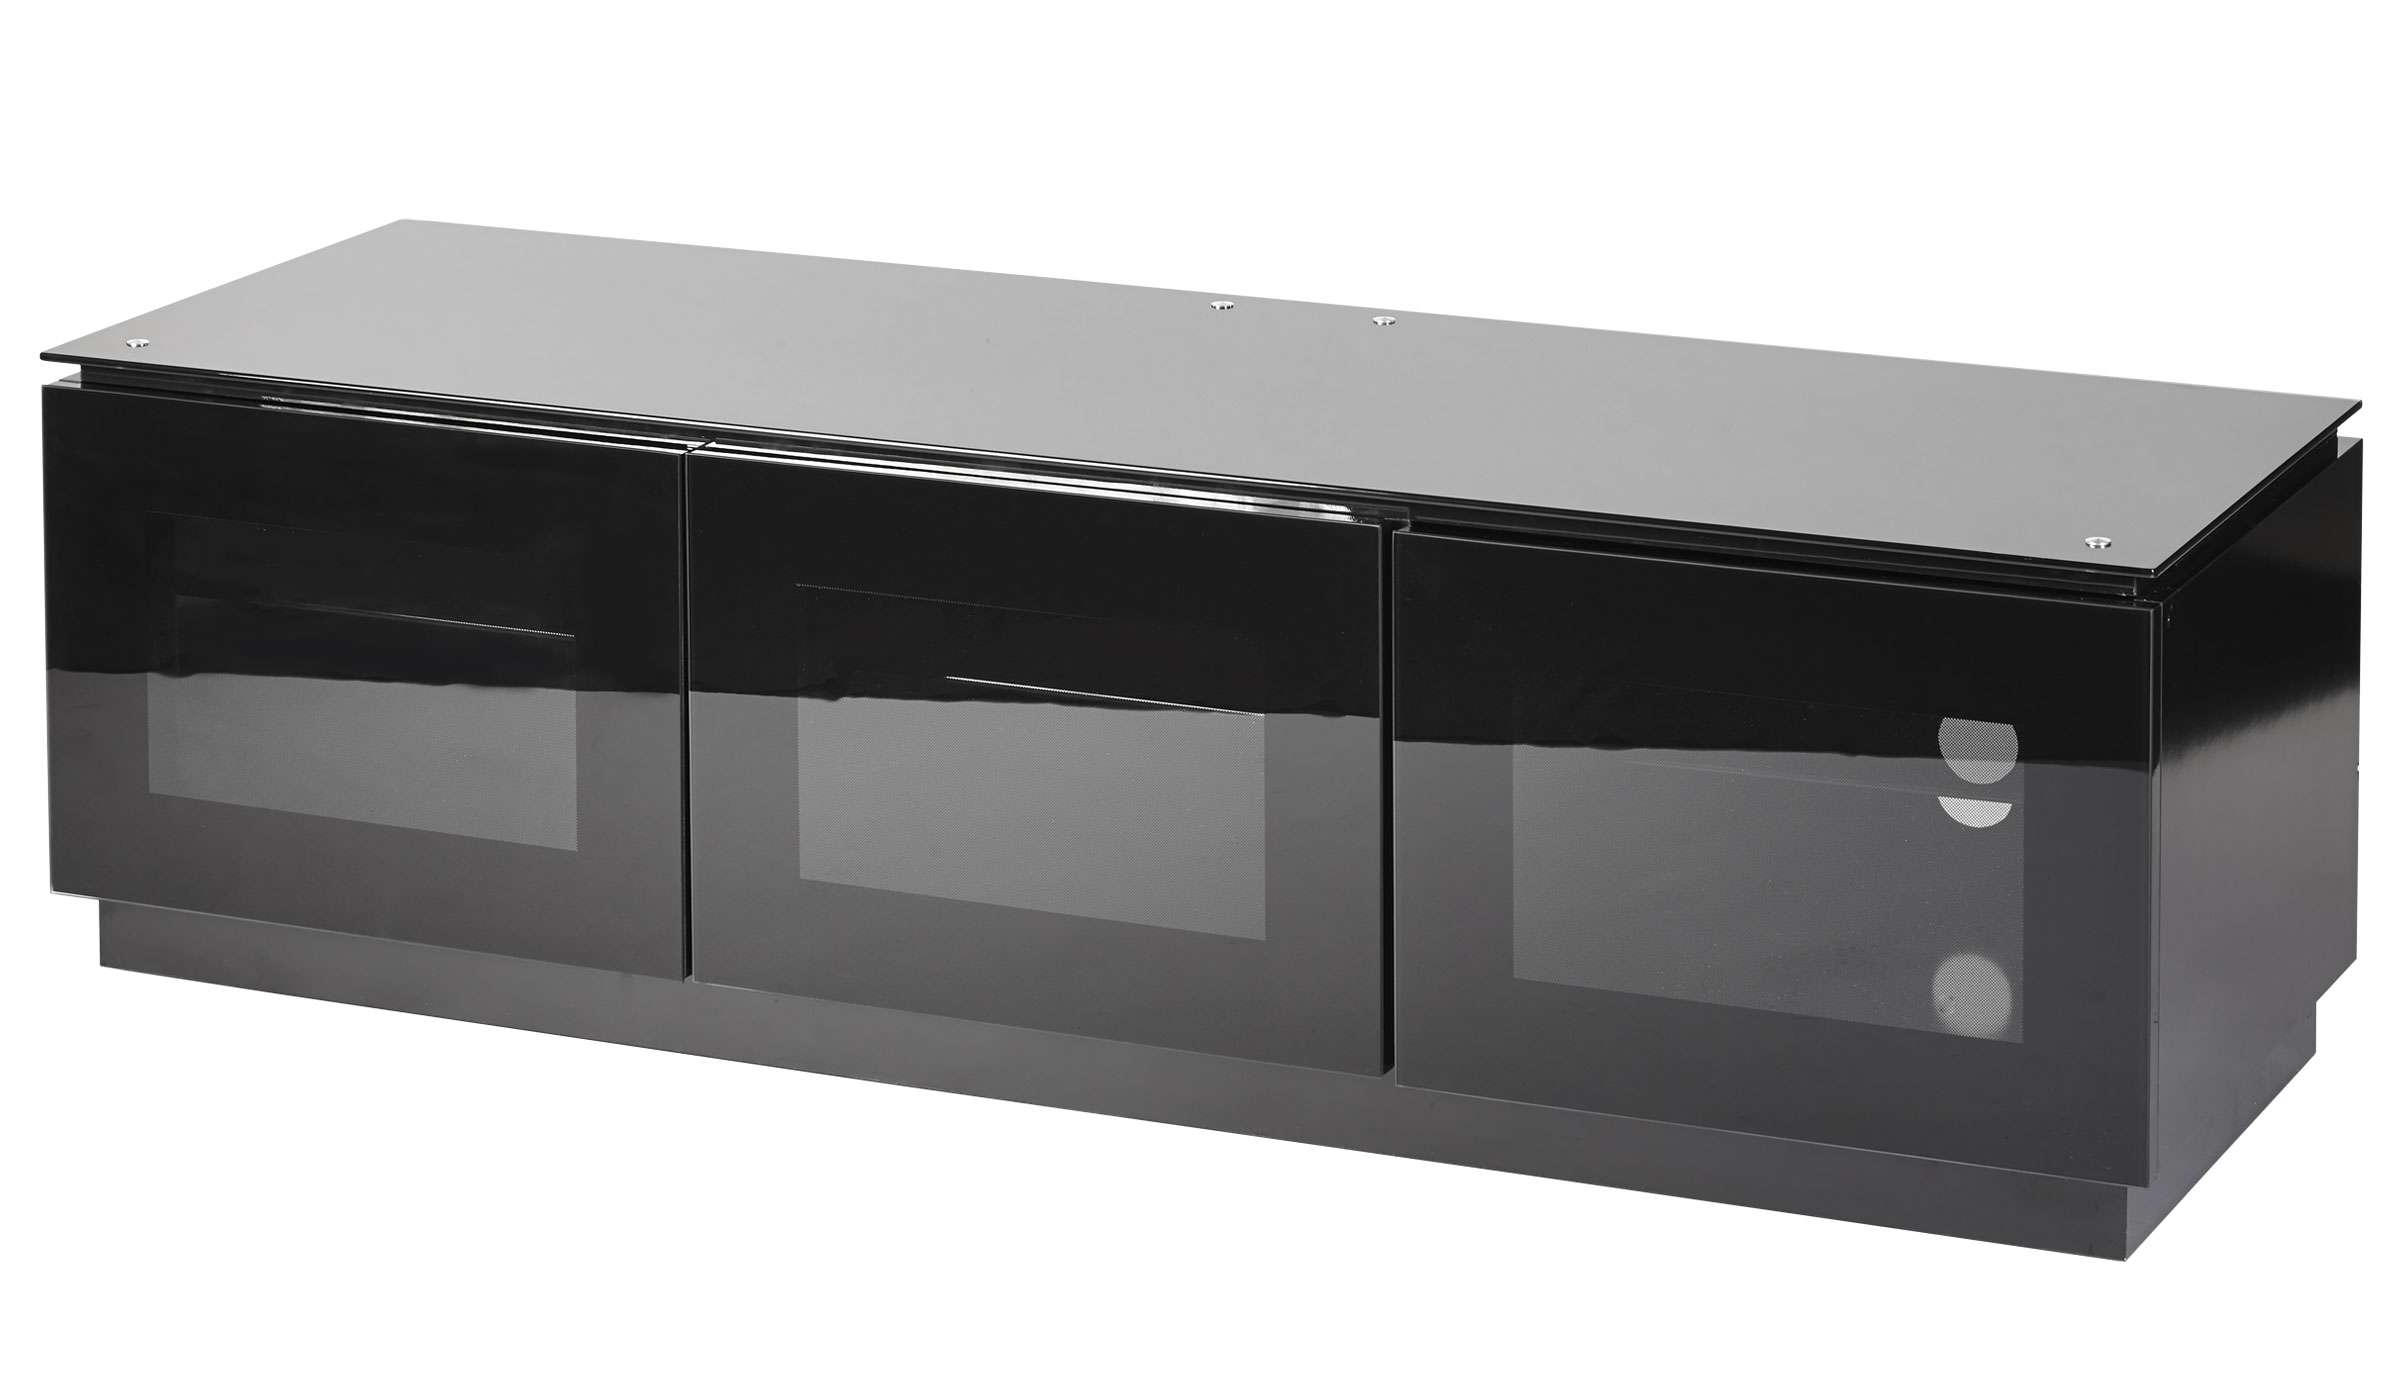 Black Gloss Tv Unit Up To 65 Inch Flat Tv | Mmt D1500 With Regard To Black Glass Tv Cabinets (View 2 of 20)